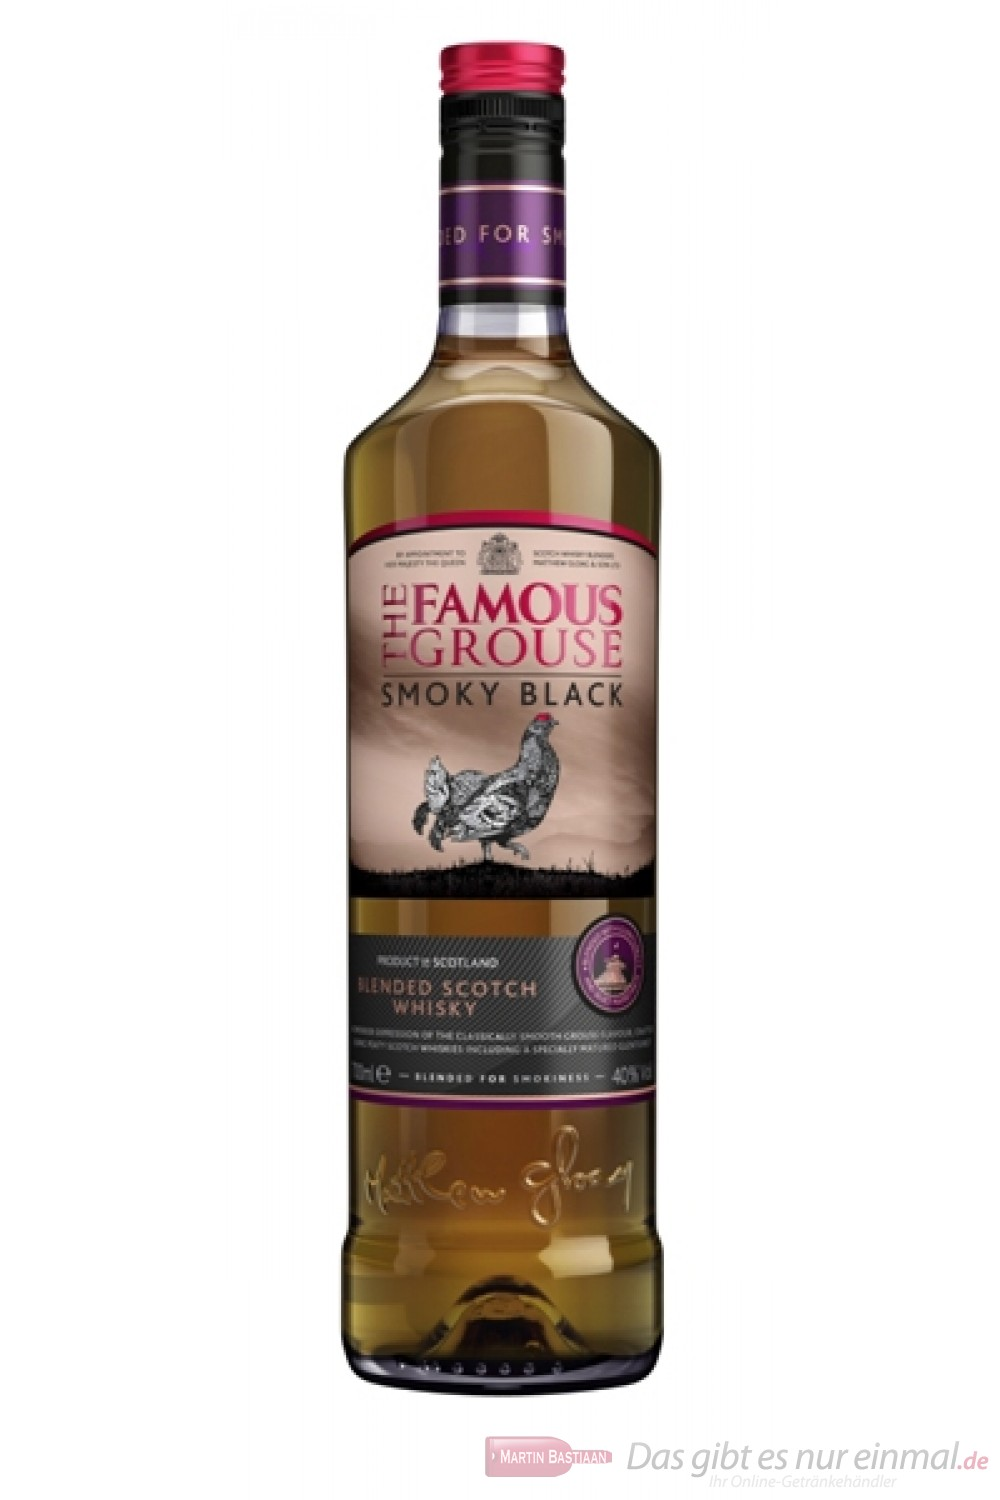 The Famous Grouse Smoky Black